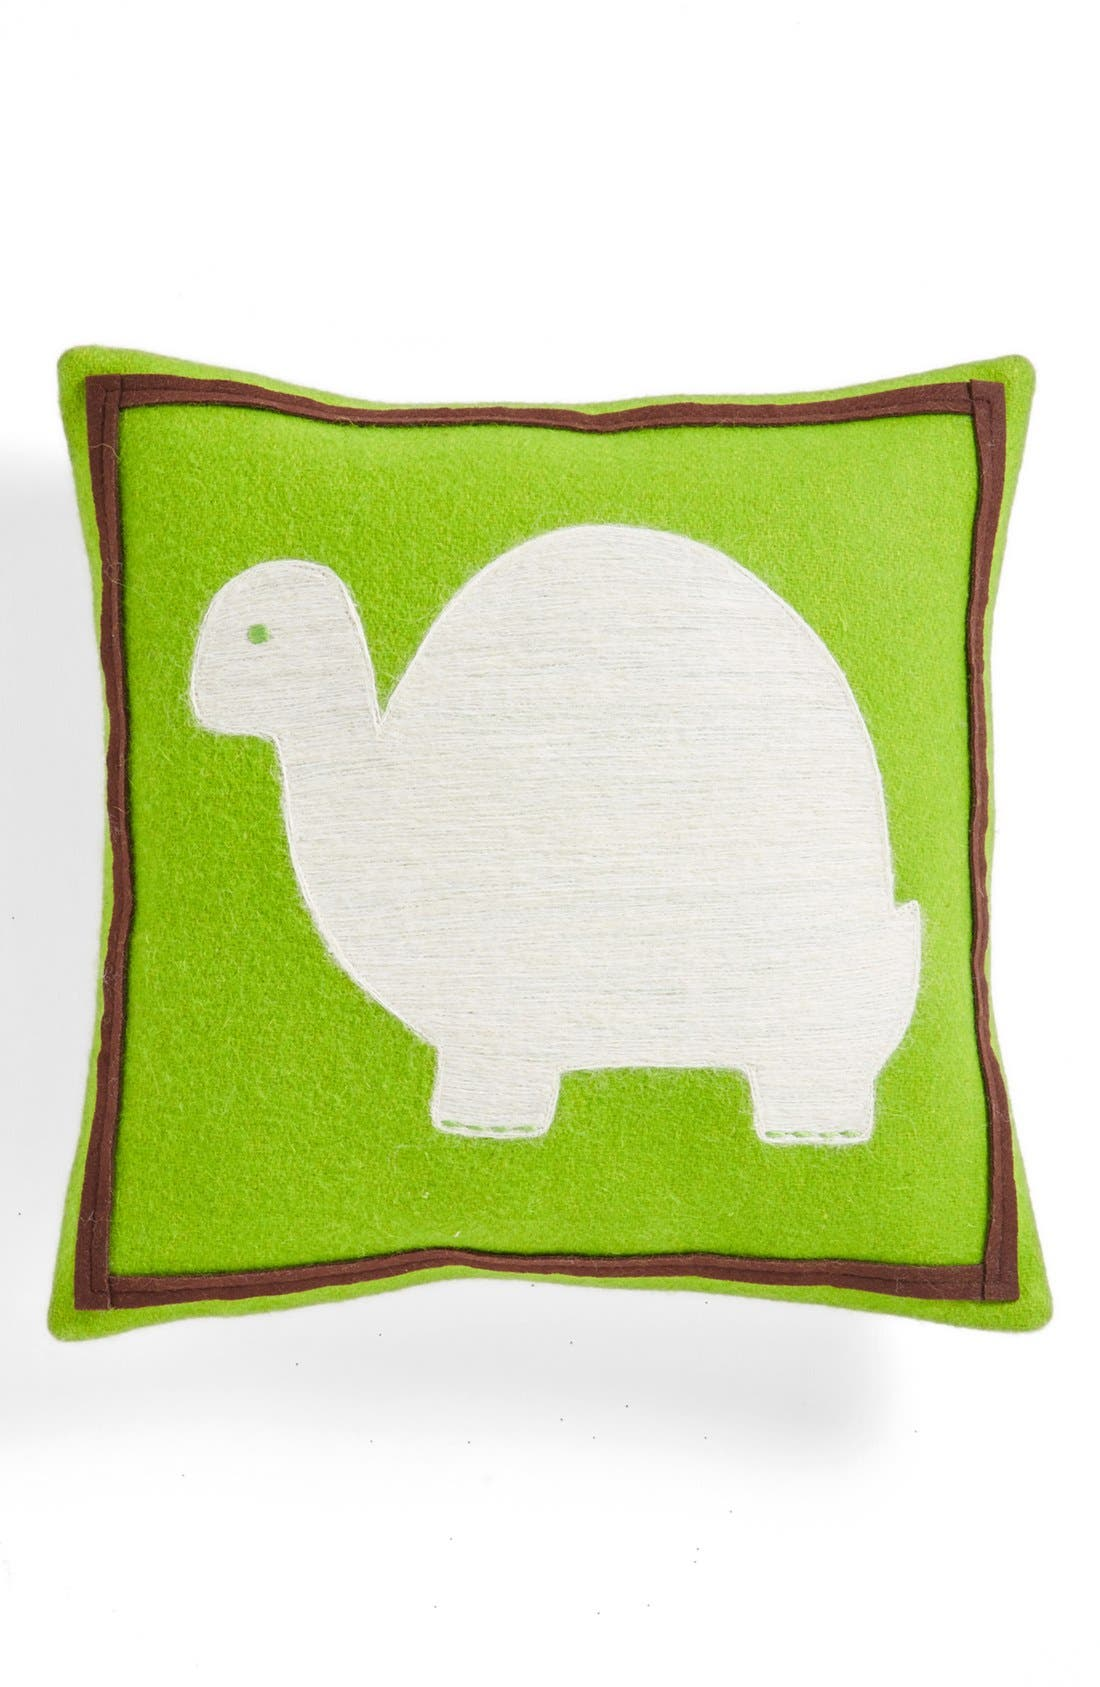 Alternate Image 1 Selected - Amity Home 'Turtle' Decorative Pillow